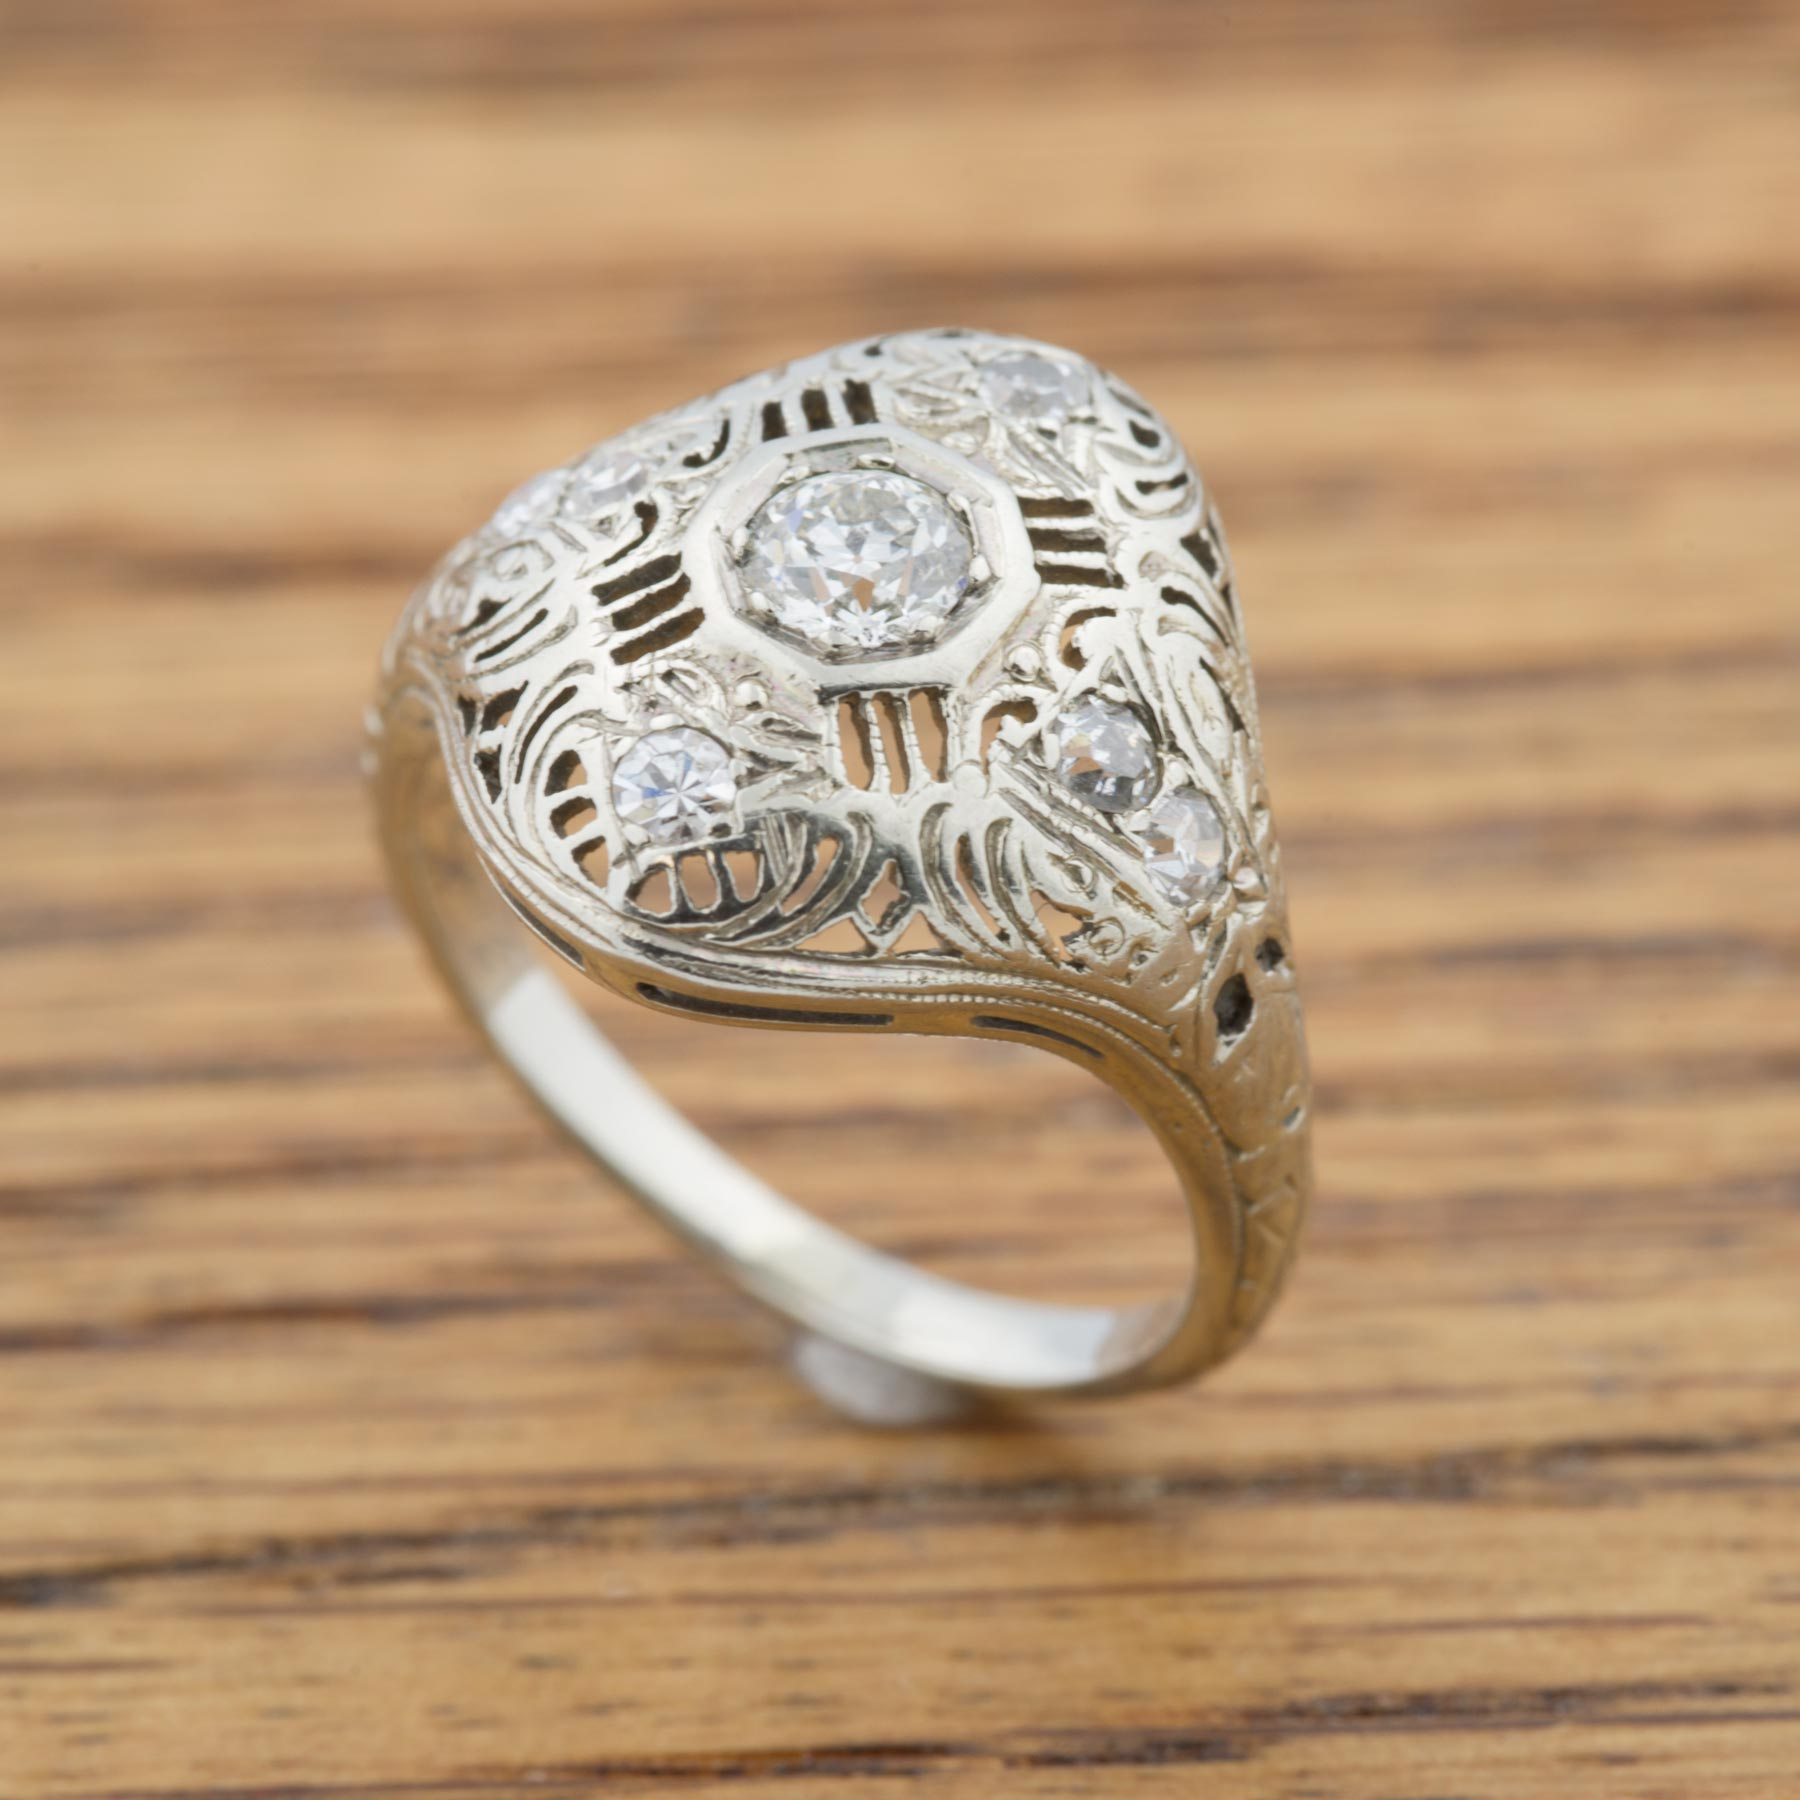 Vintage Edwardian Filigree Ring | Era Design Vancouver Canada